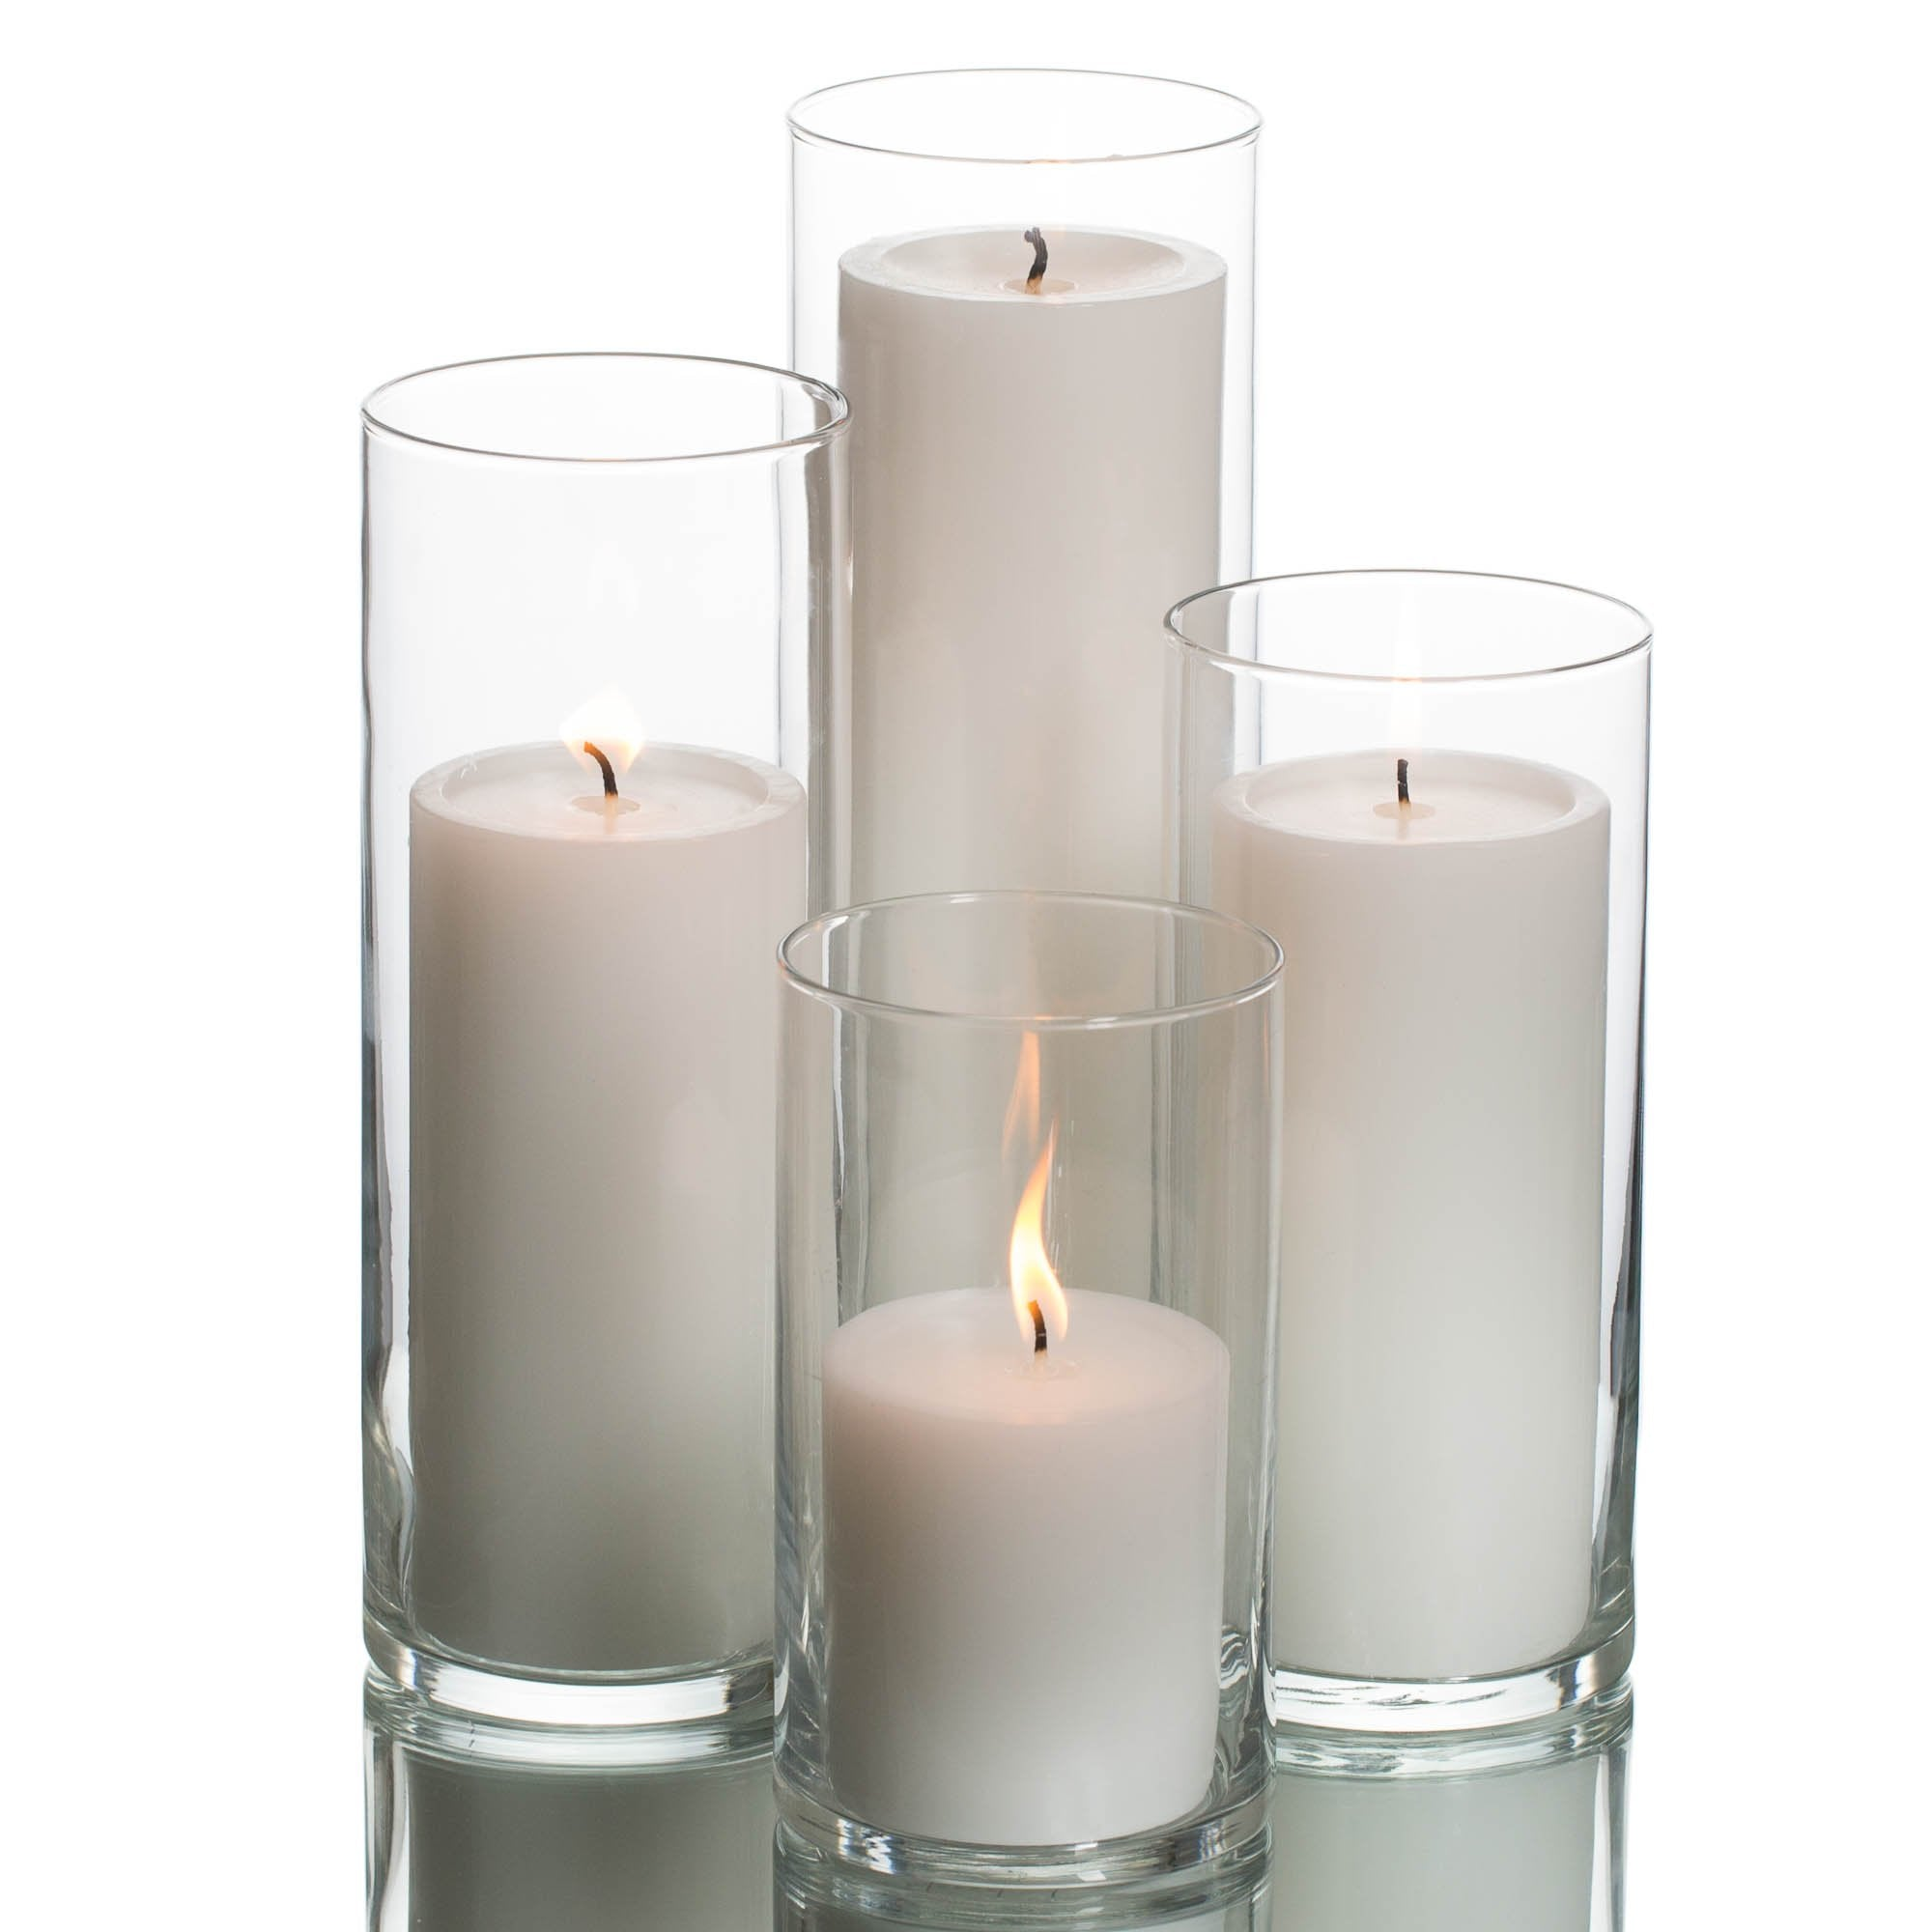 Best Glass Pillar Candle Holders Quick Candles